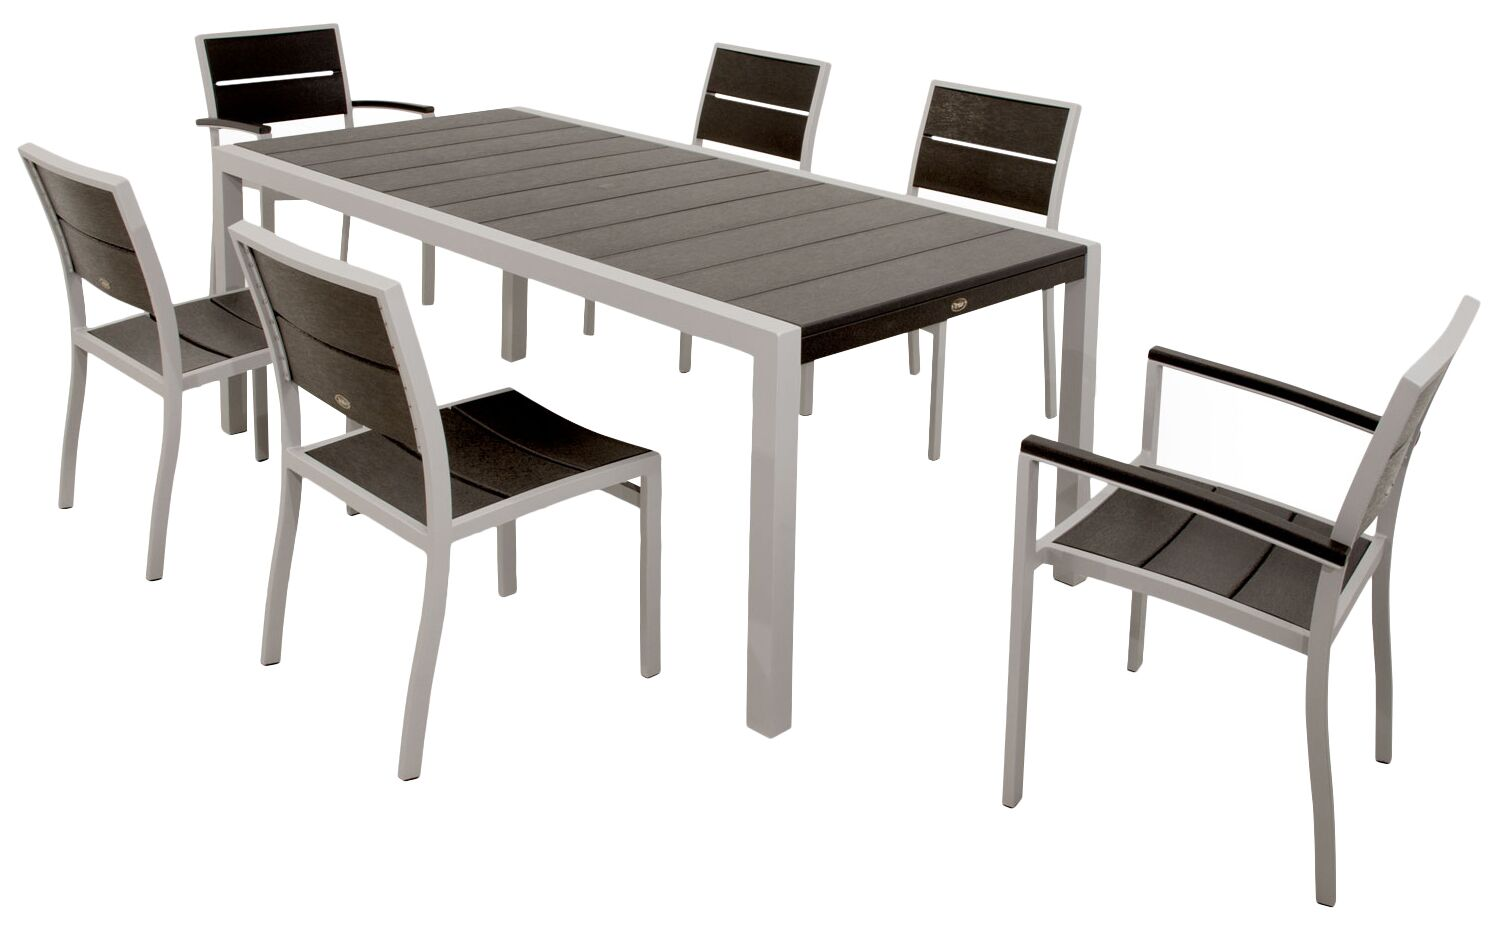 Surf City 7 Piece Dining Set Color: Textured Silver / Charcoal Black